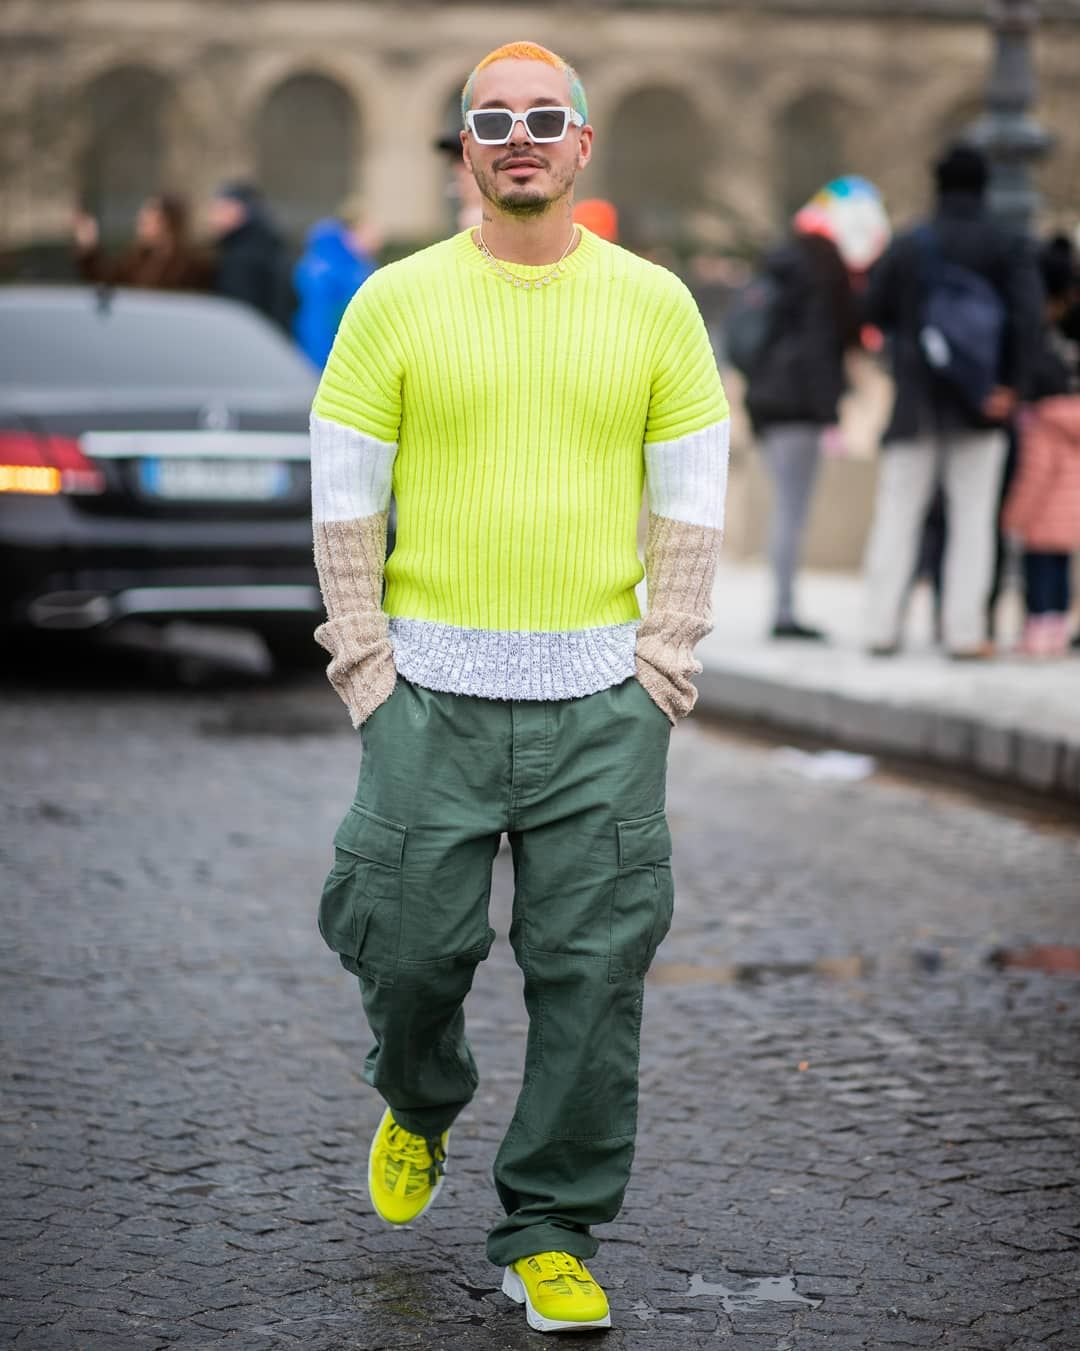 The Styleograph On Instagram Jbalvin During Pfw Www Thestyleograph Com Jbalvin Photographed By Thestyleograph Chri Photographer Fashion Street Style